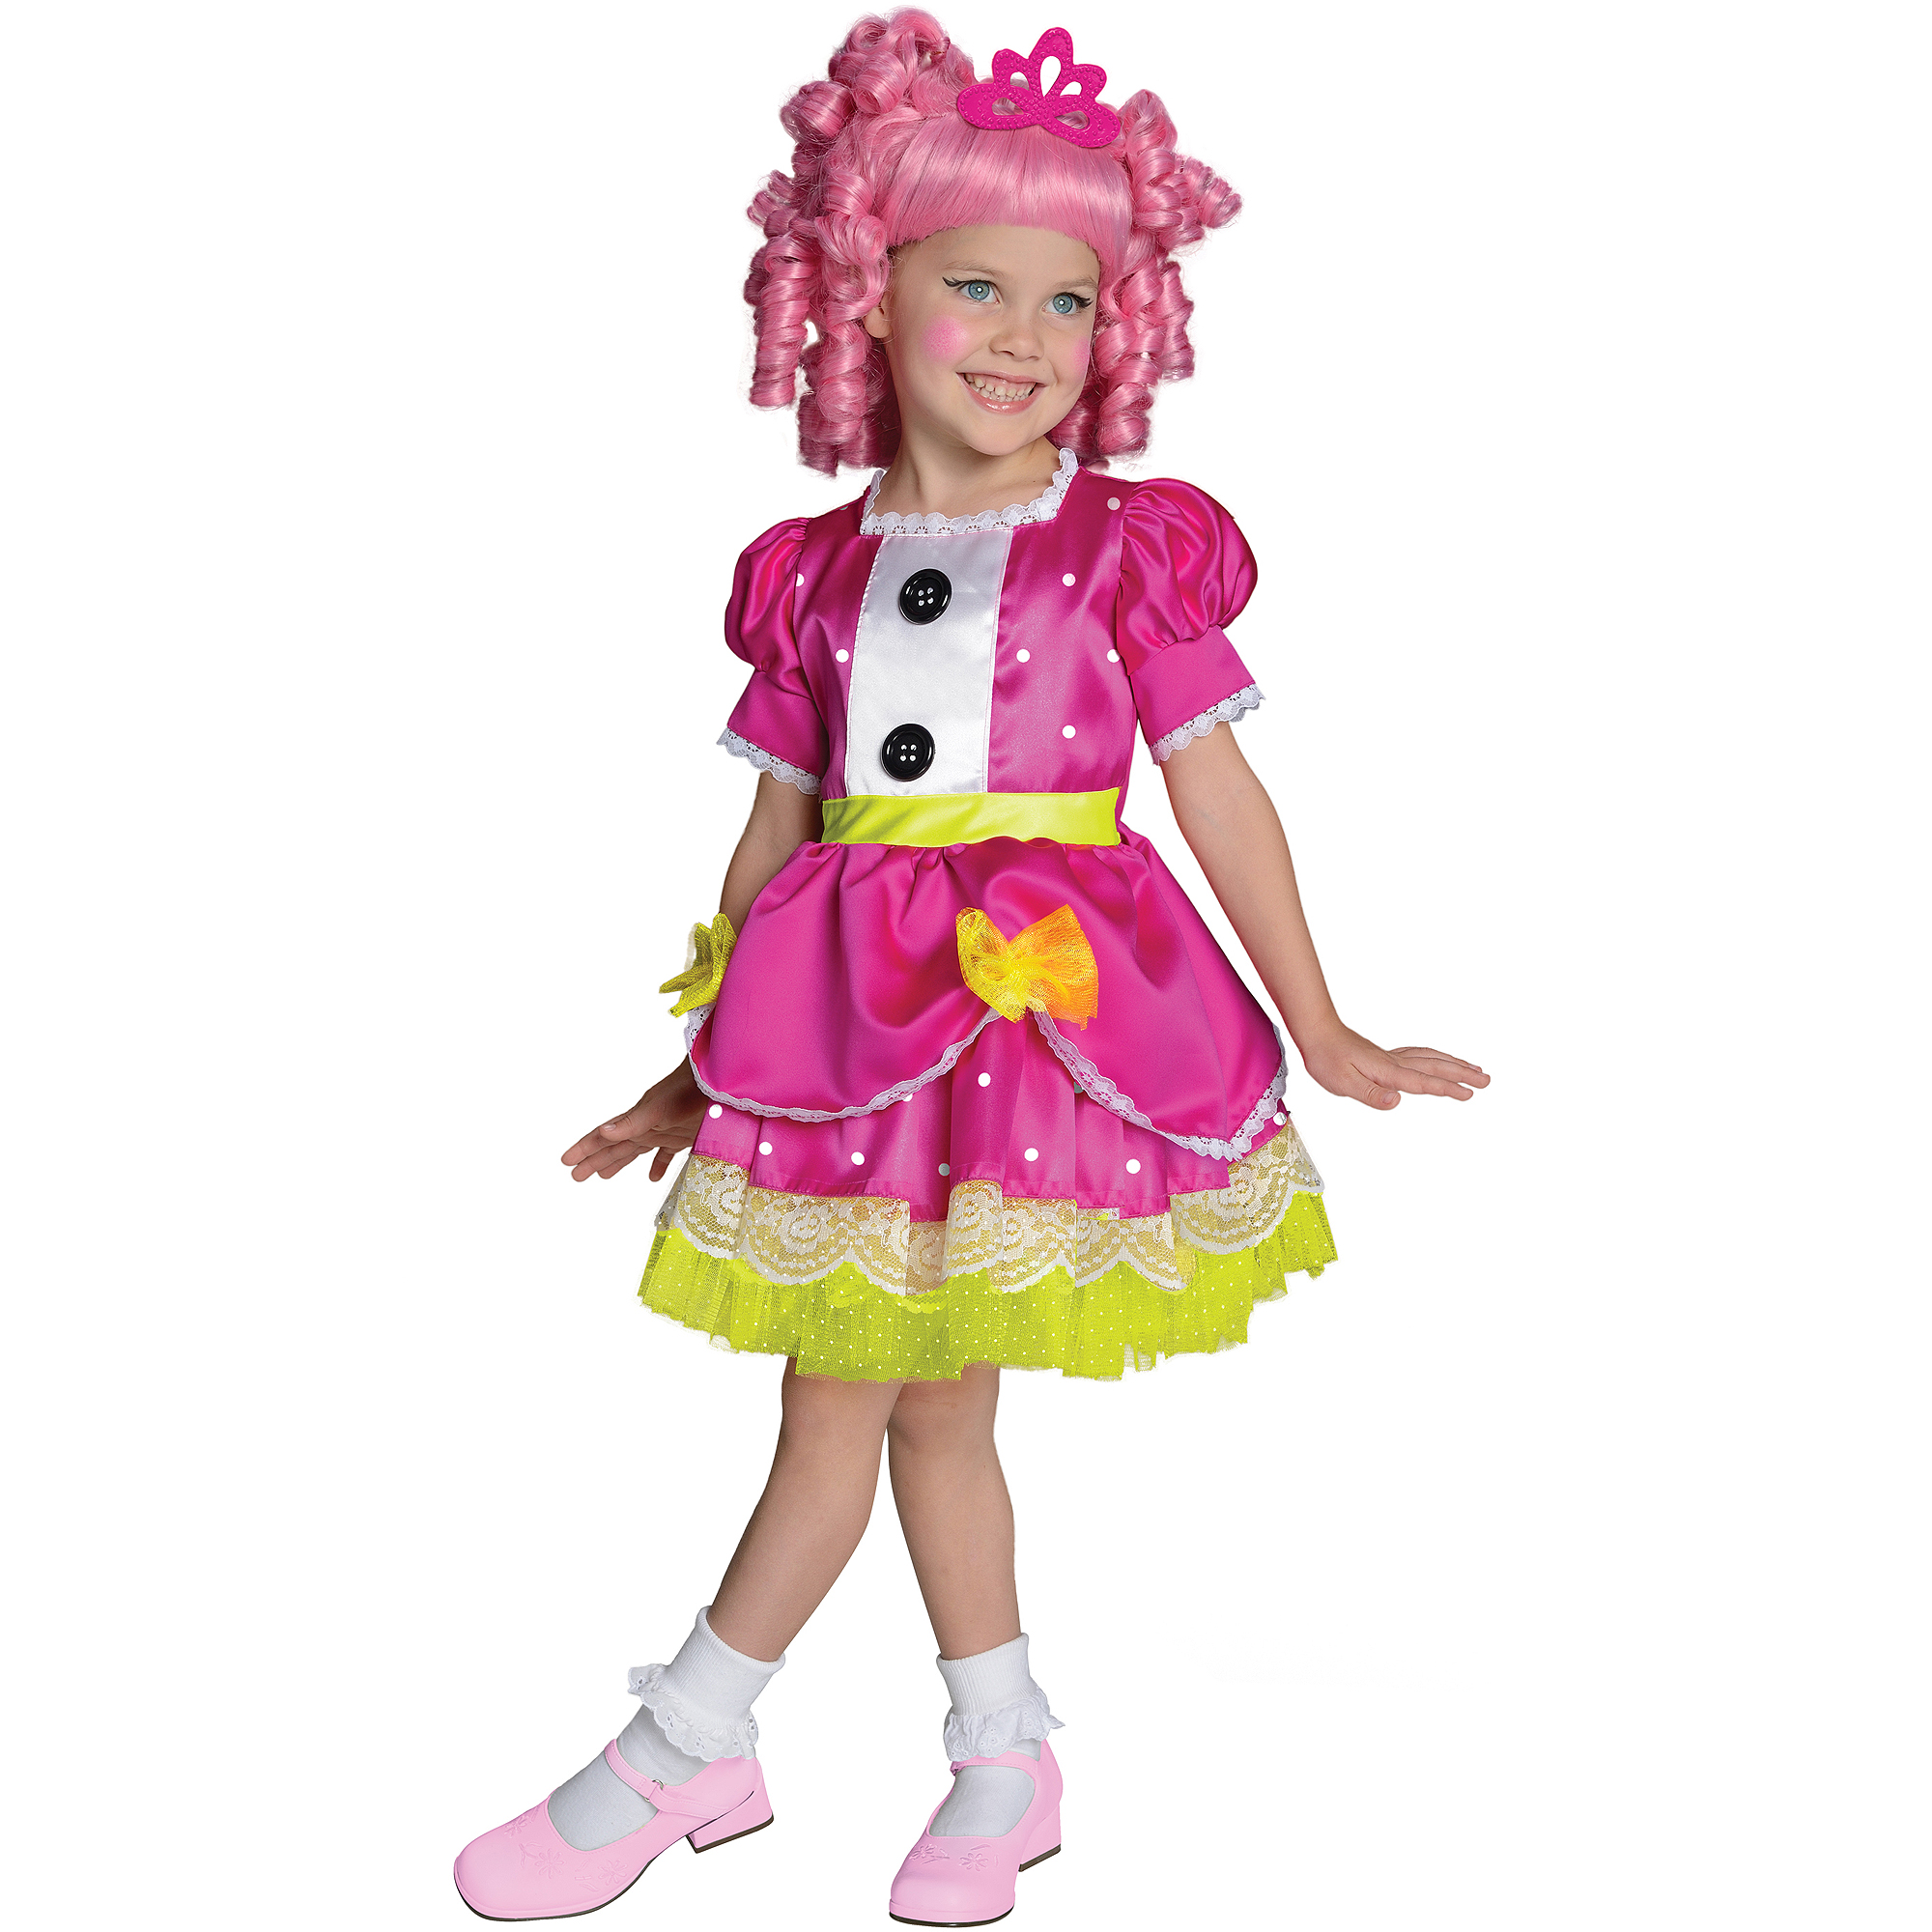 Deluxe Lalaloopsy Jewel Sparkles Child/Toddler Halloween Costume